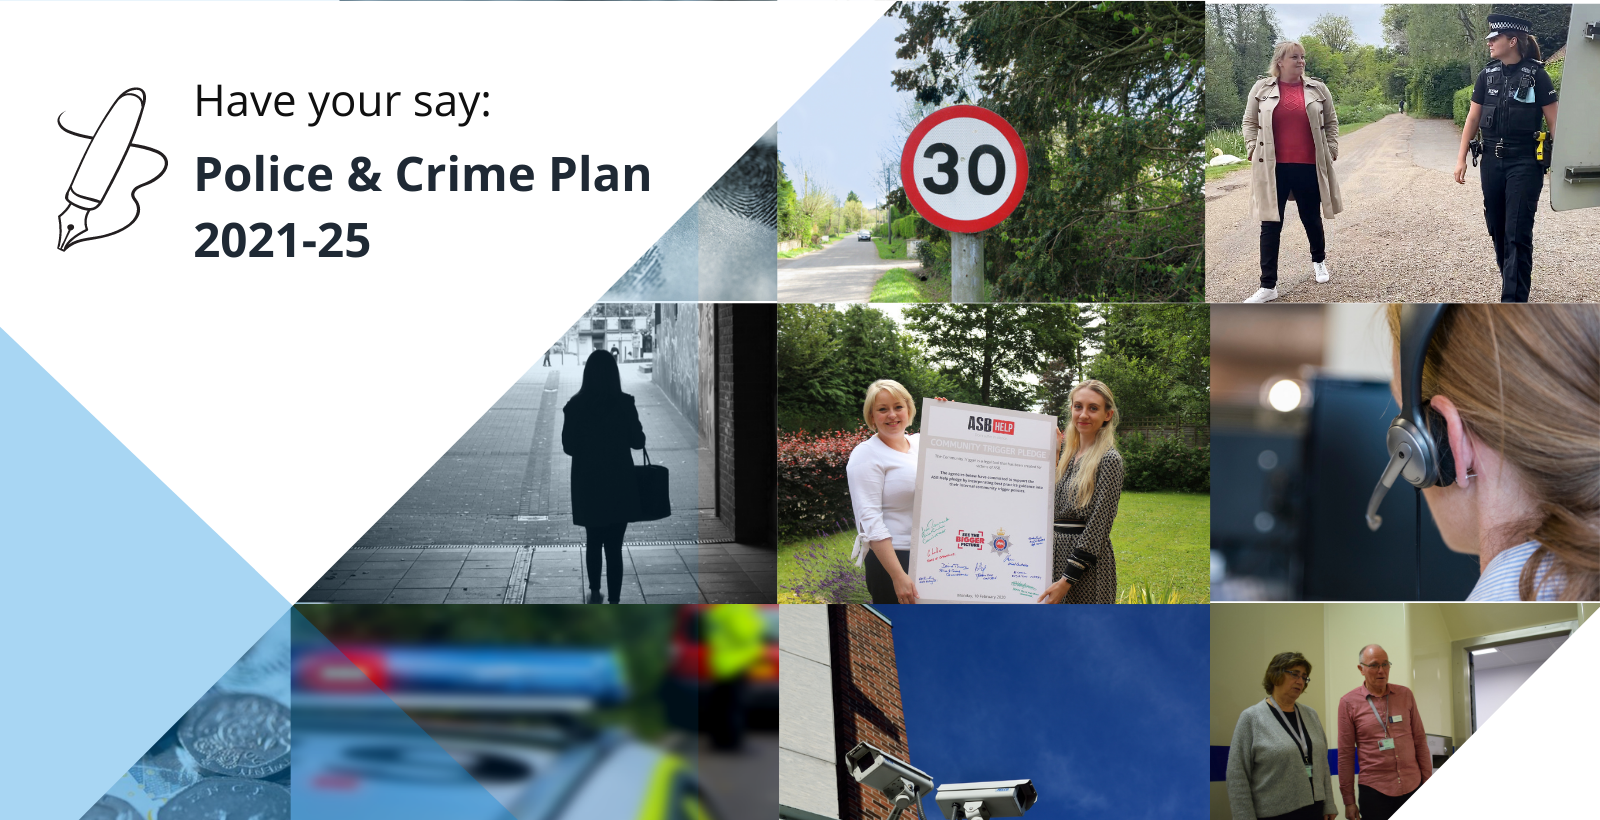 Commissioner wants to hear resident's views on policing priorities for Surrey